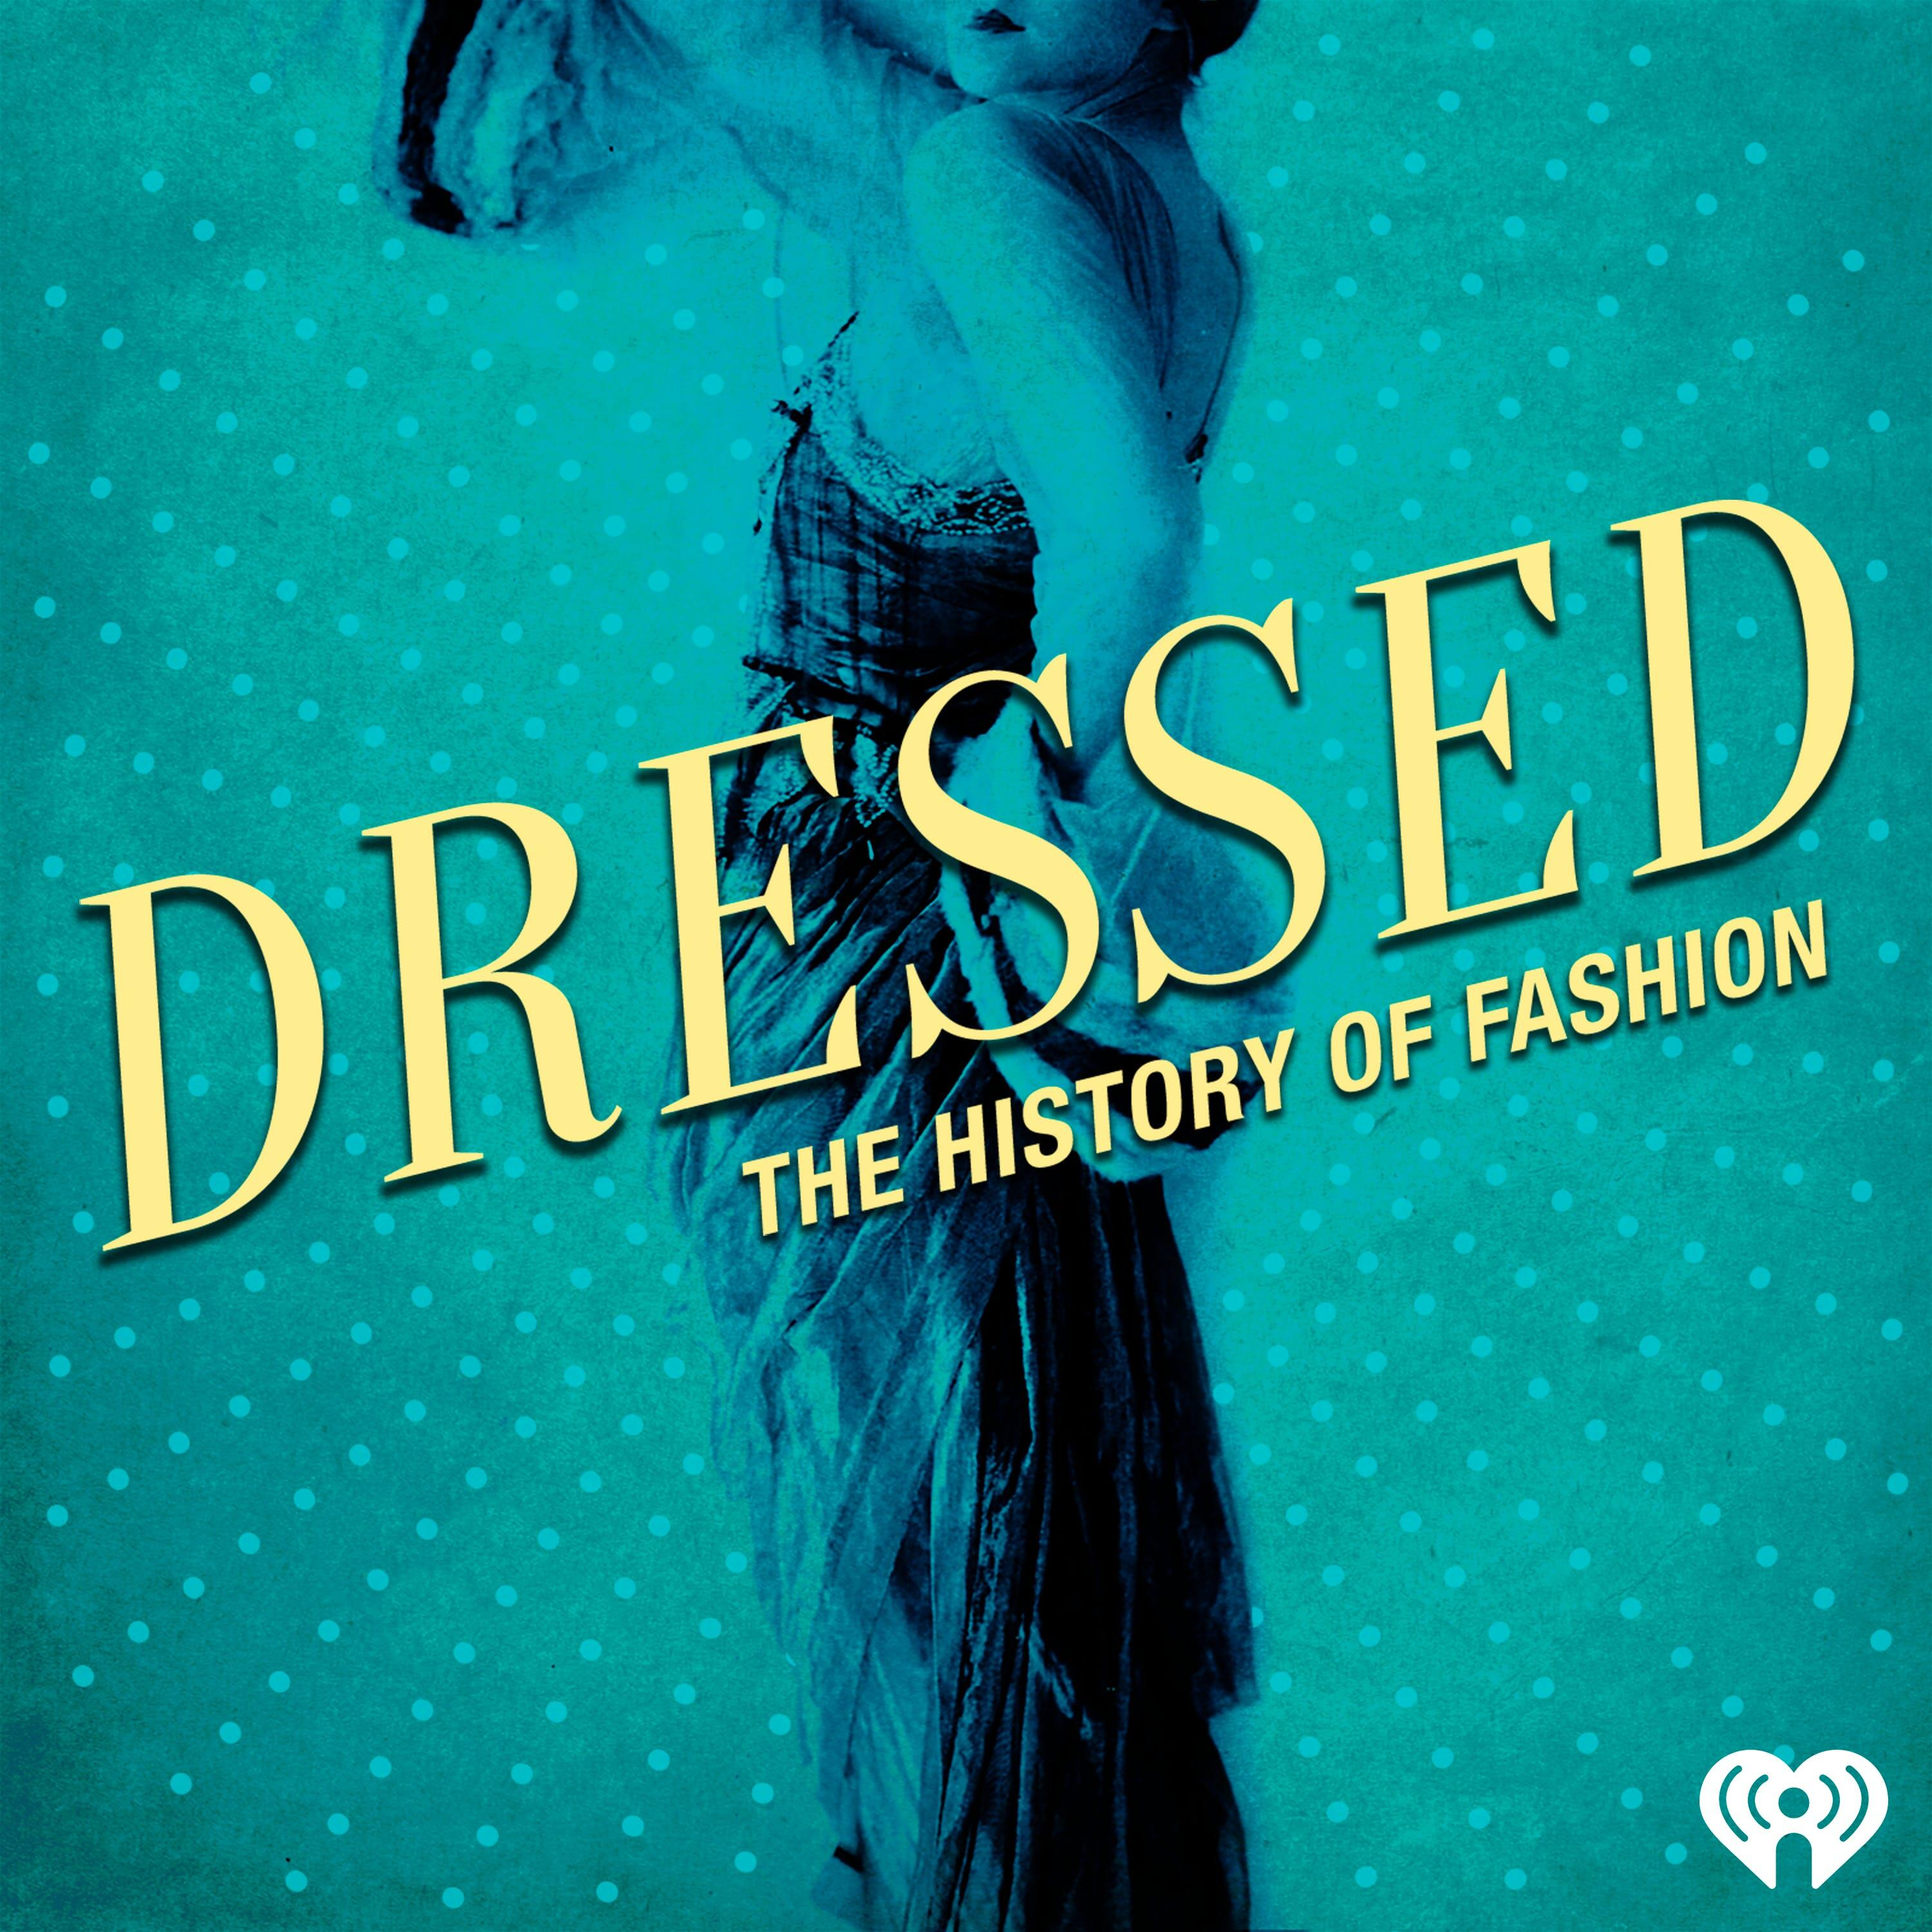 Listen Free to Dressed: The History of Fashion on iHeartRadio Podcasts |  iHeartRadio